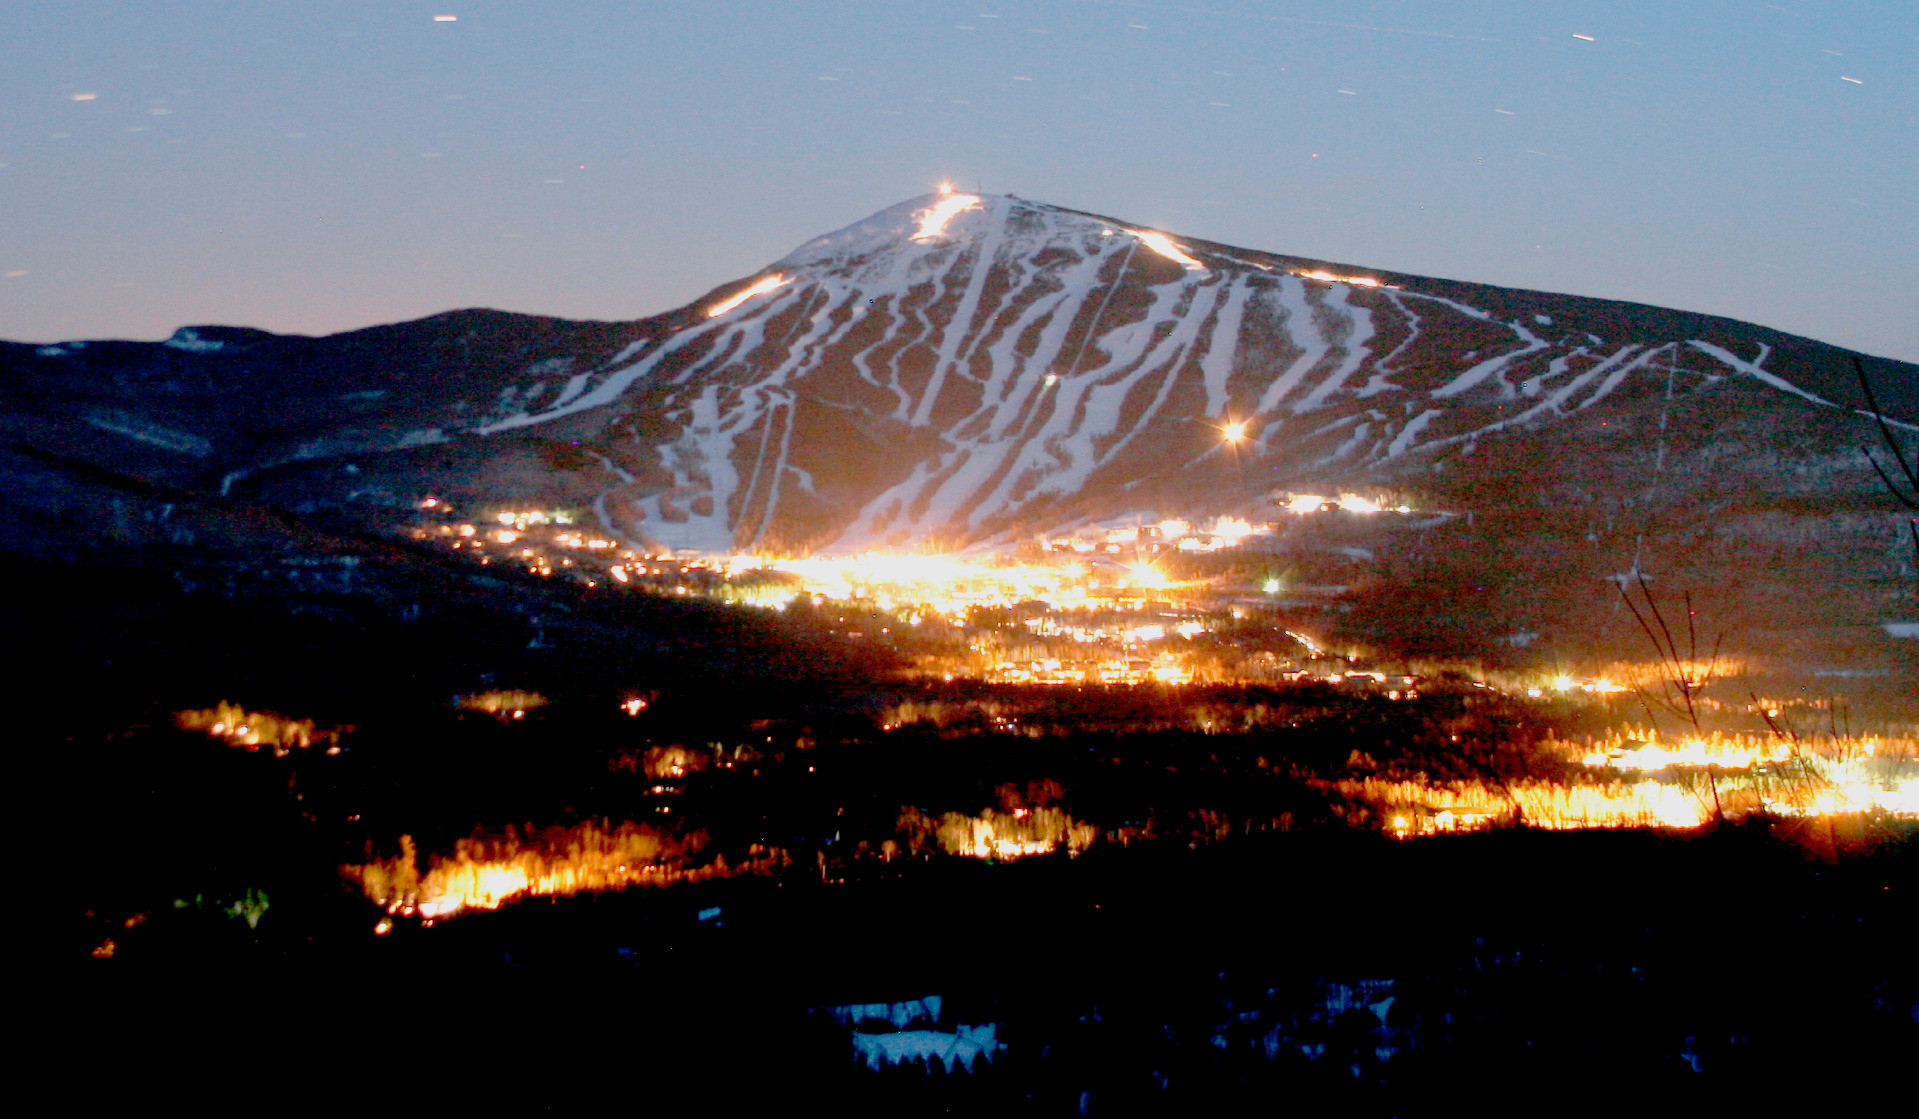 Night falls over Sugarloaf Resortundefined